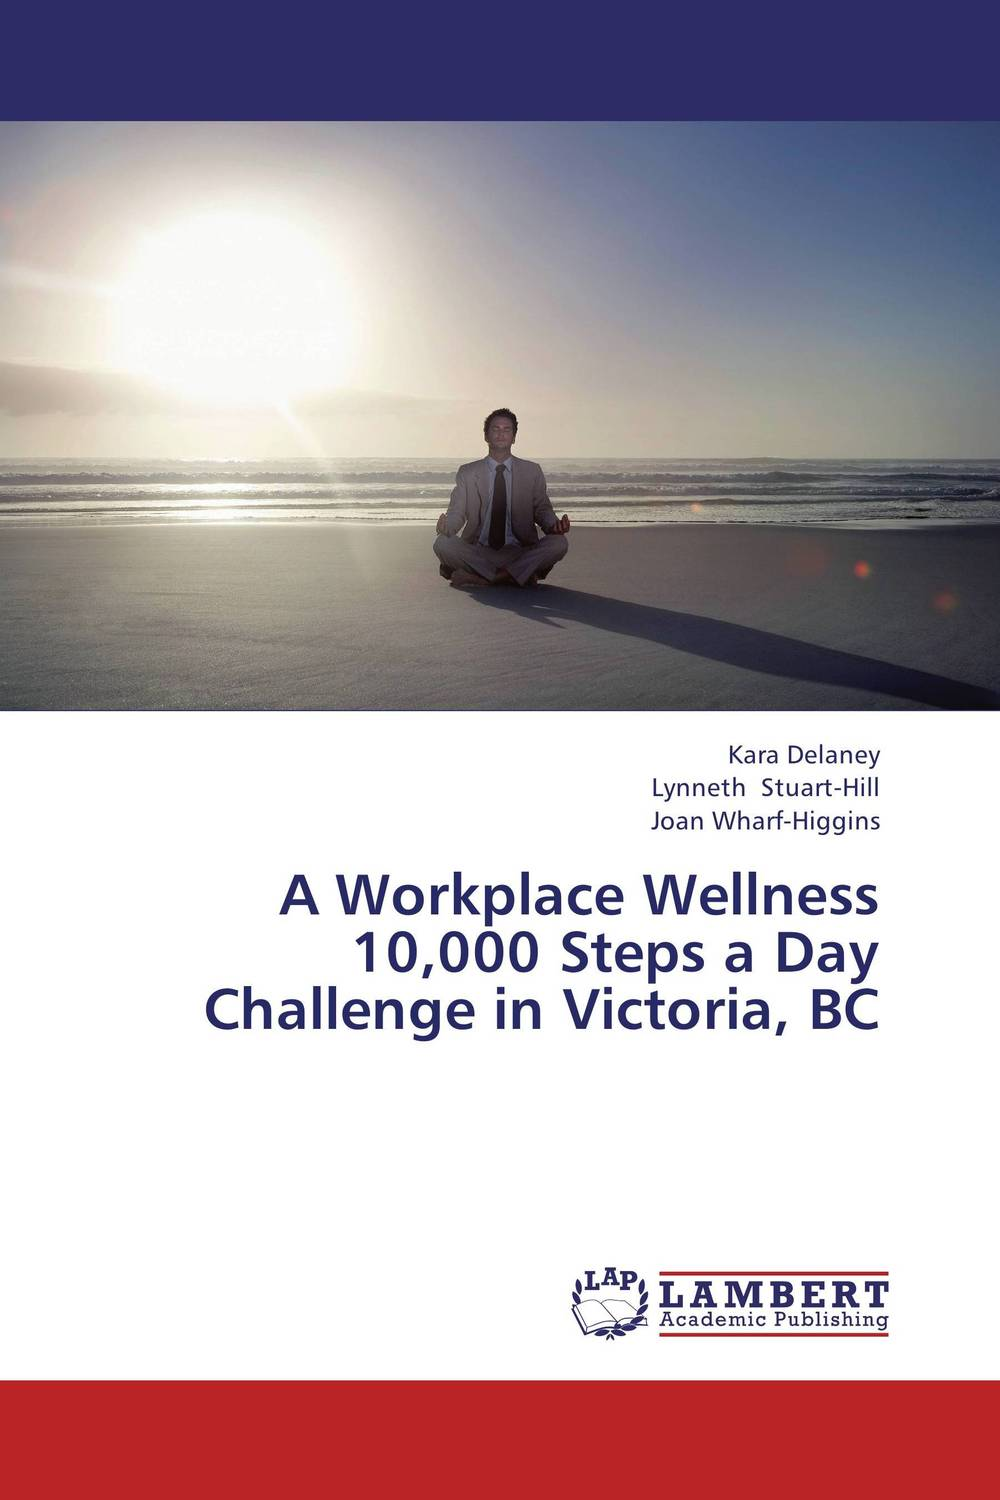 A Workplace Wellness 10,000 Steps a Day Challenge in Victoria, BC logged on